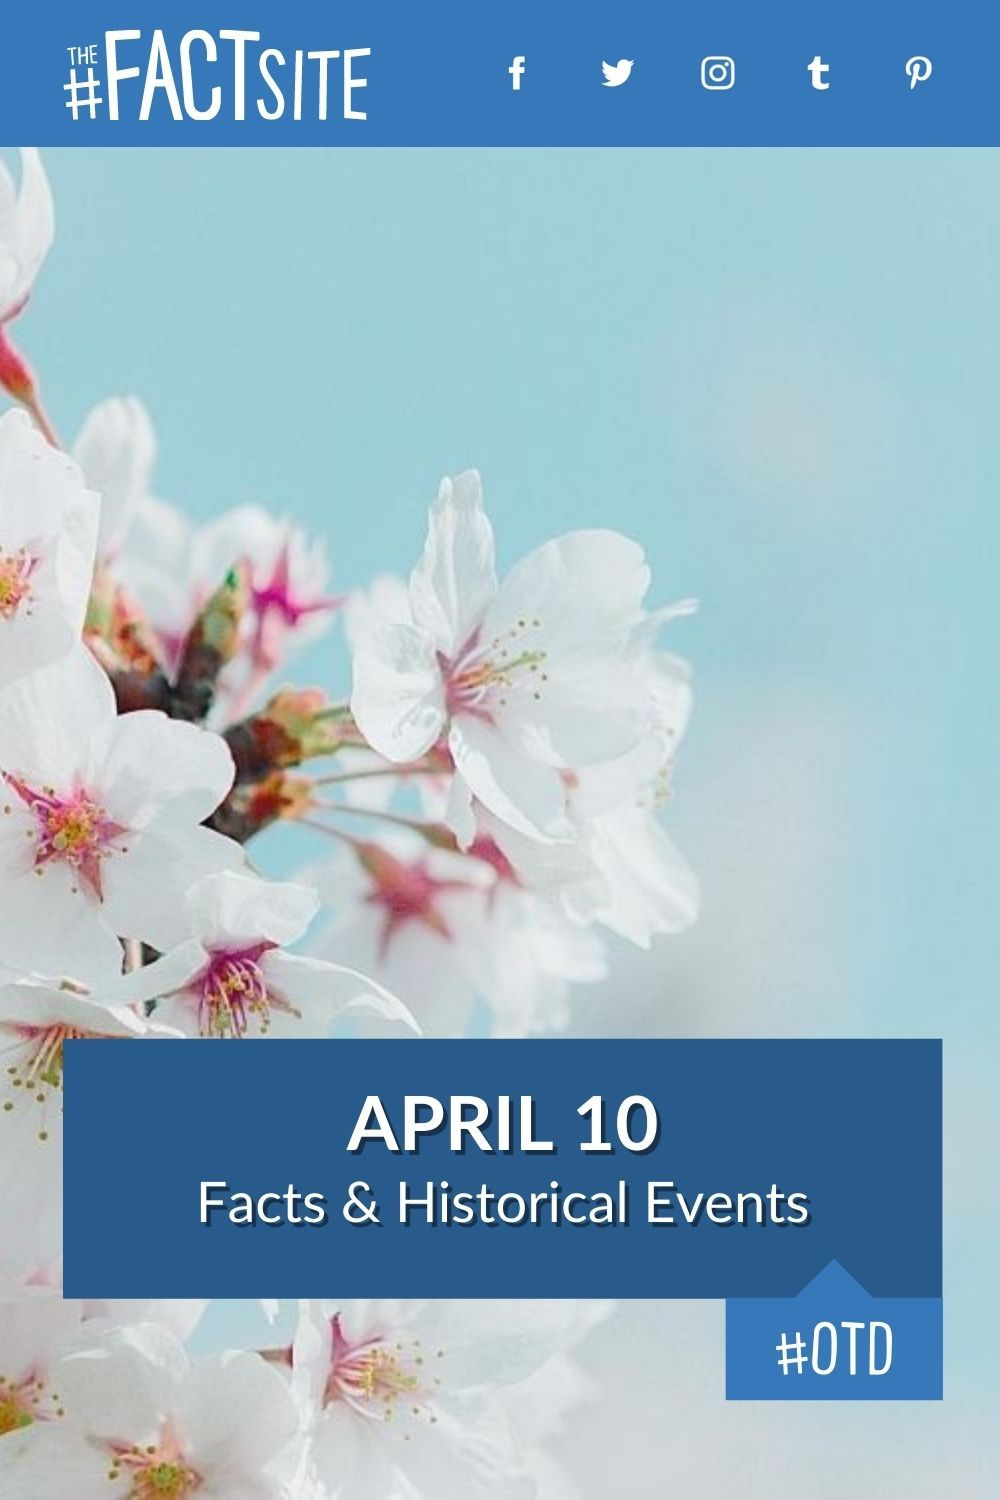 Facts & Historic Events That Happened on April 10